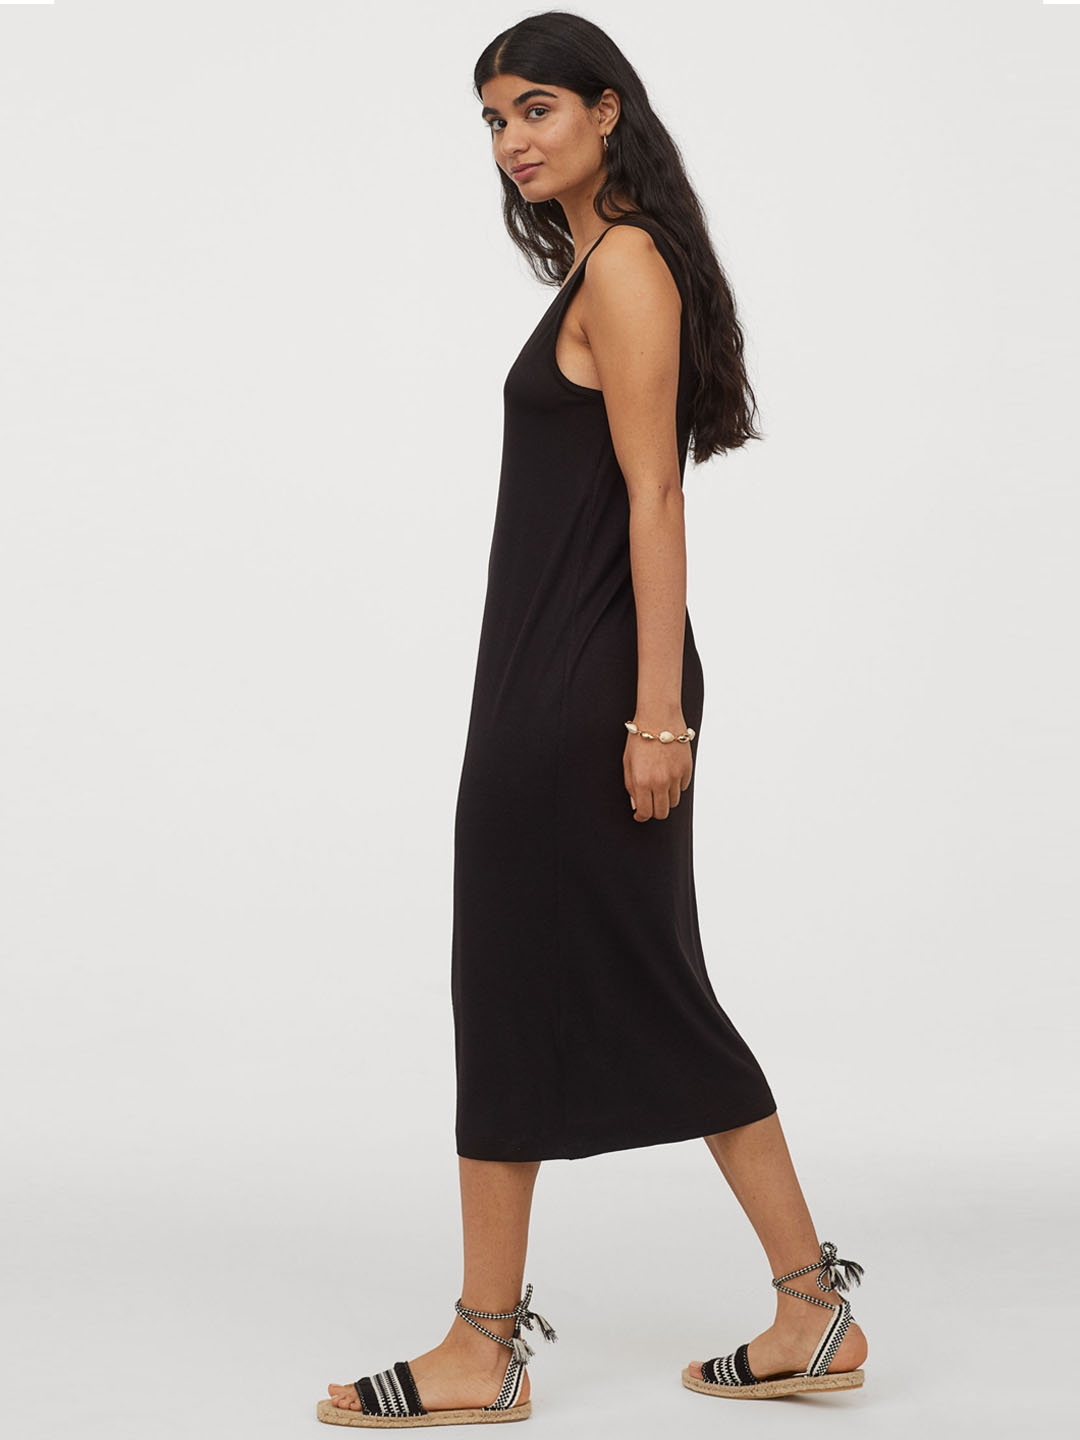 H M Black V neck jersey dress